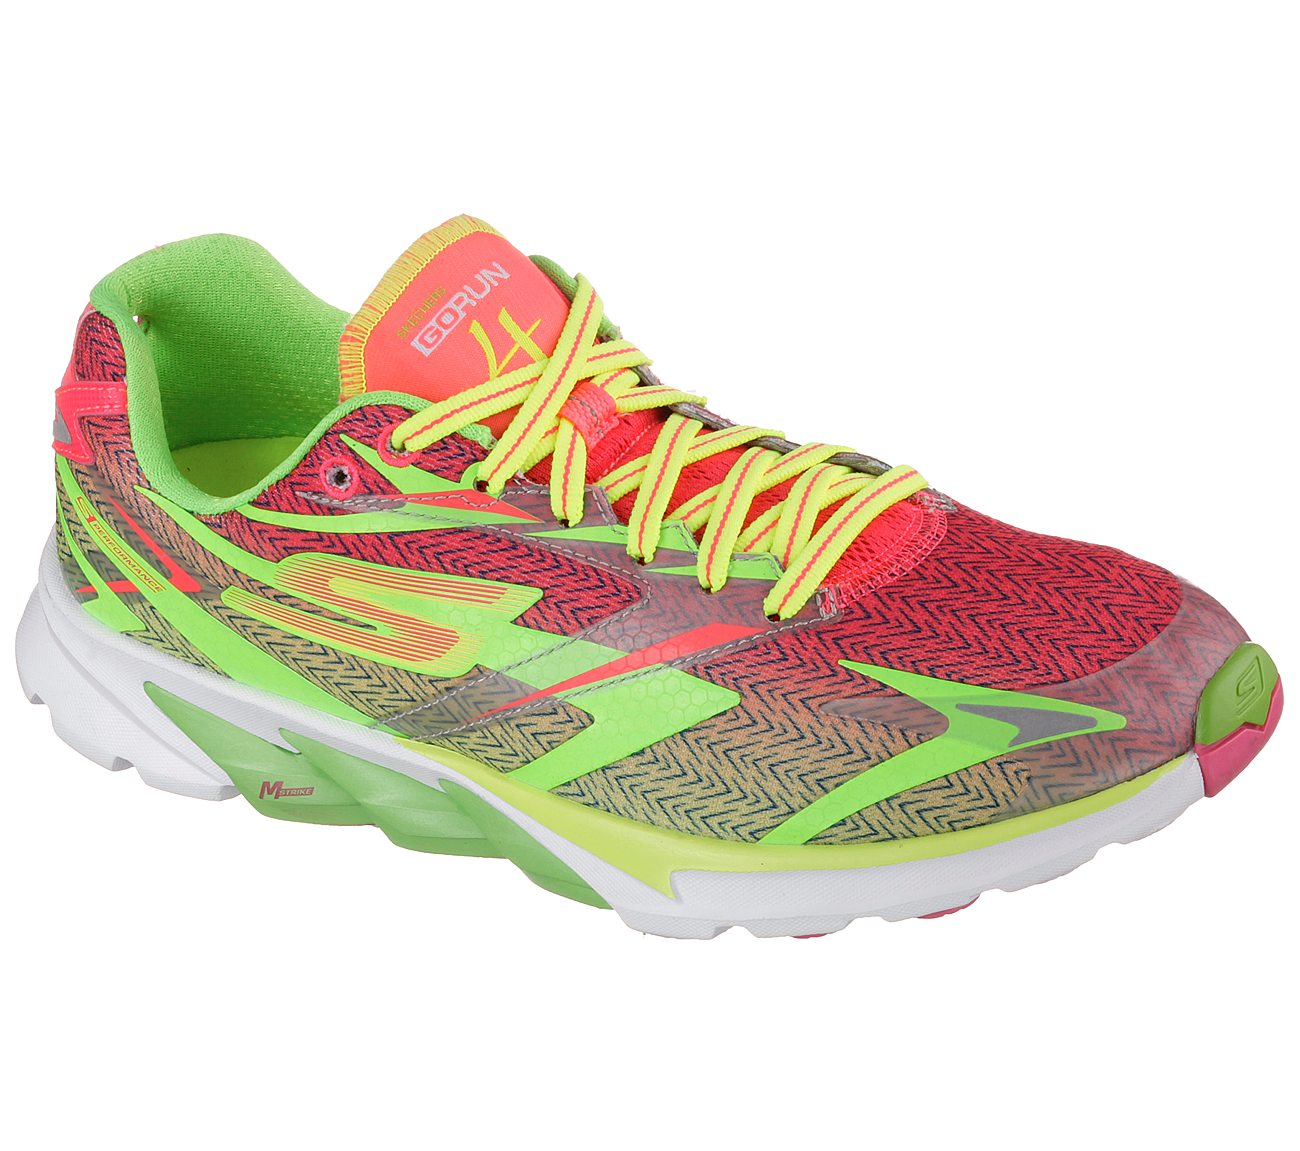 Skechers GOrun 4 Skechers Performance Shoes